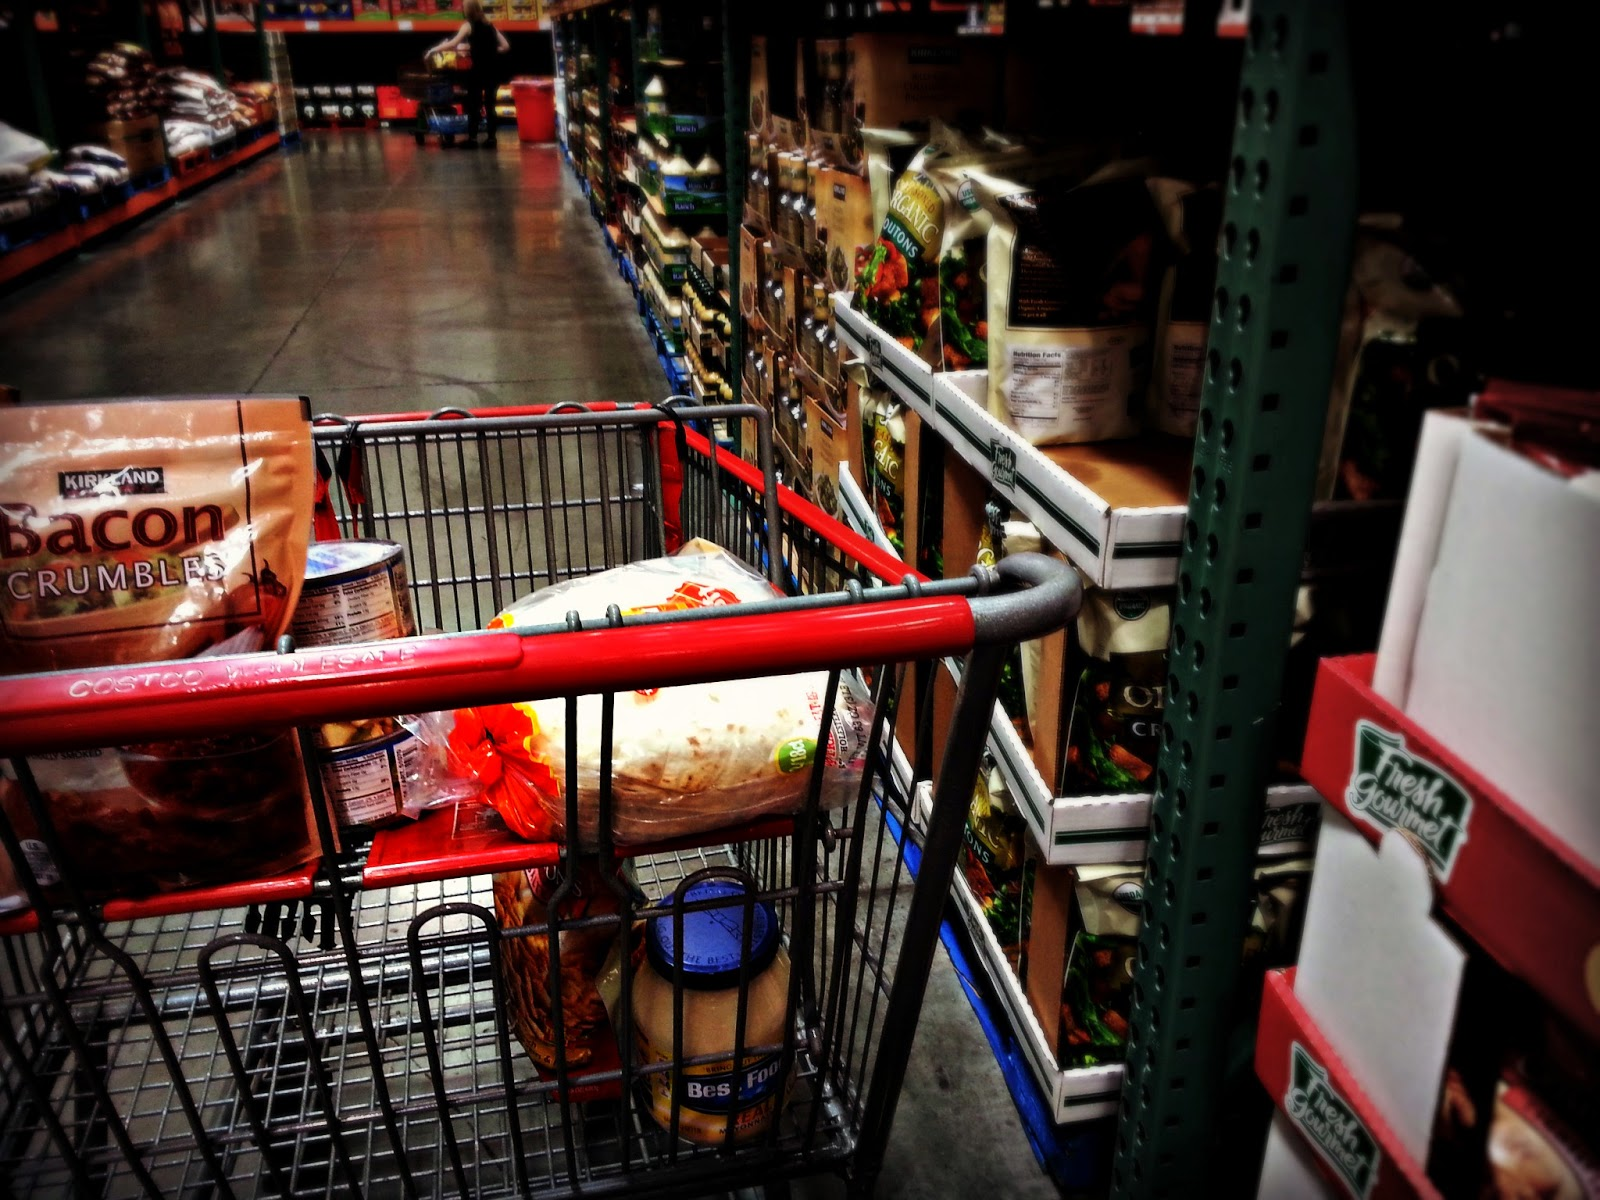 Costco Shopping Trip- Granola Bars, Canned Chicken, Humus, and More!